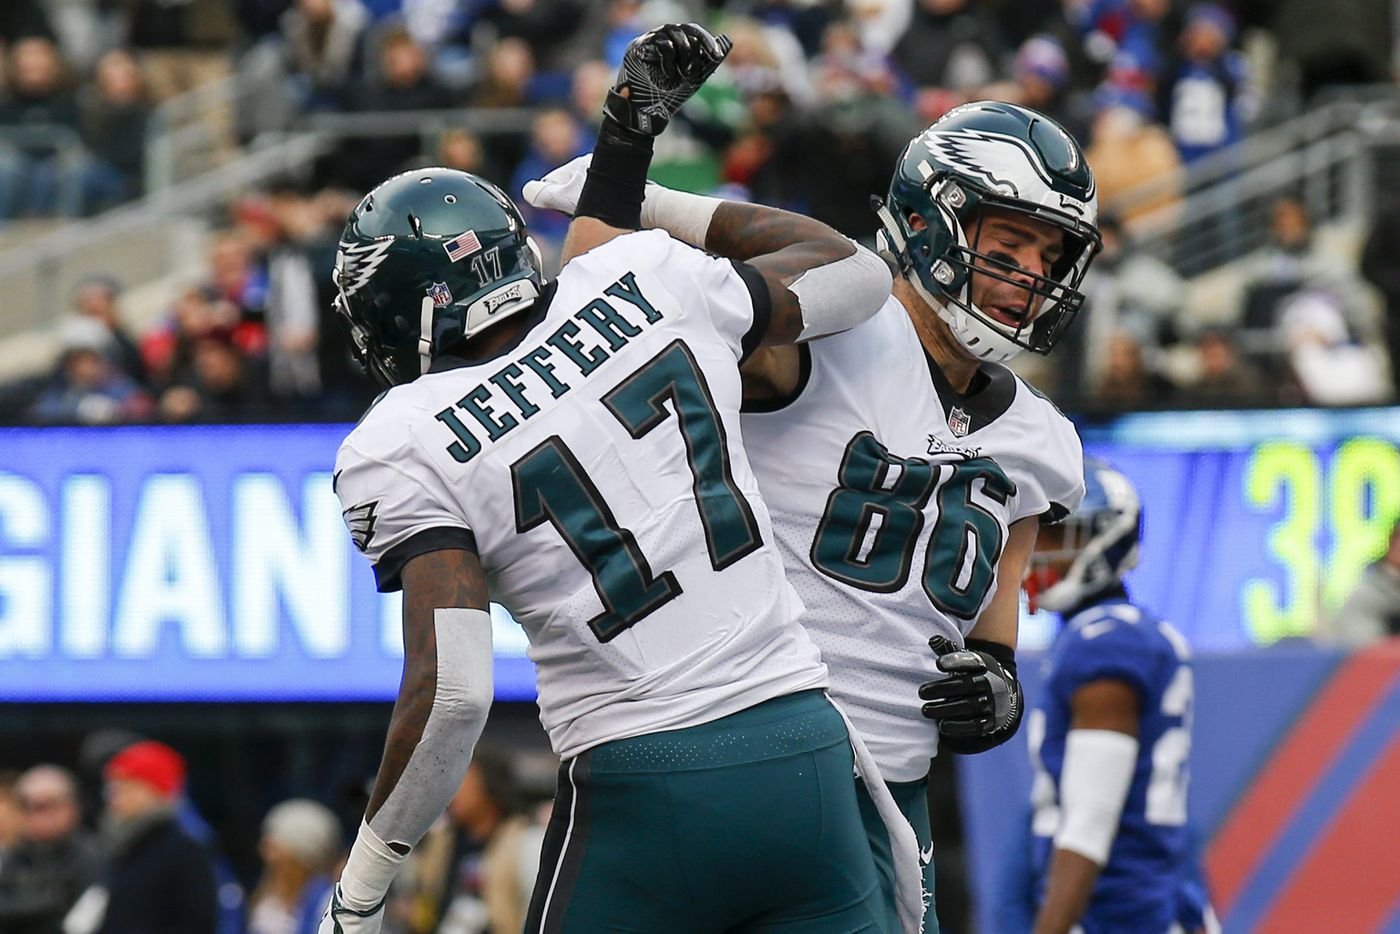 Eagles struggling post Super Bowl, Giants still losing